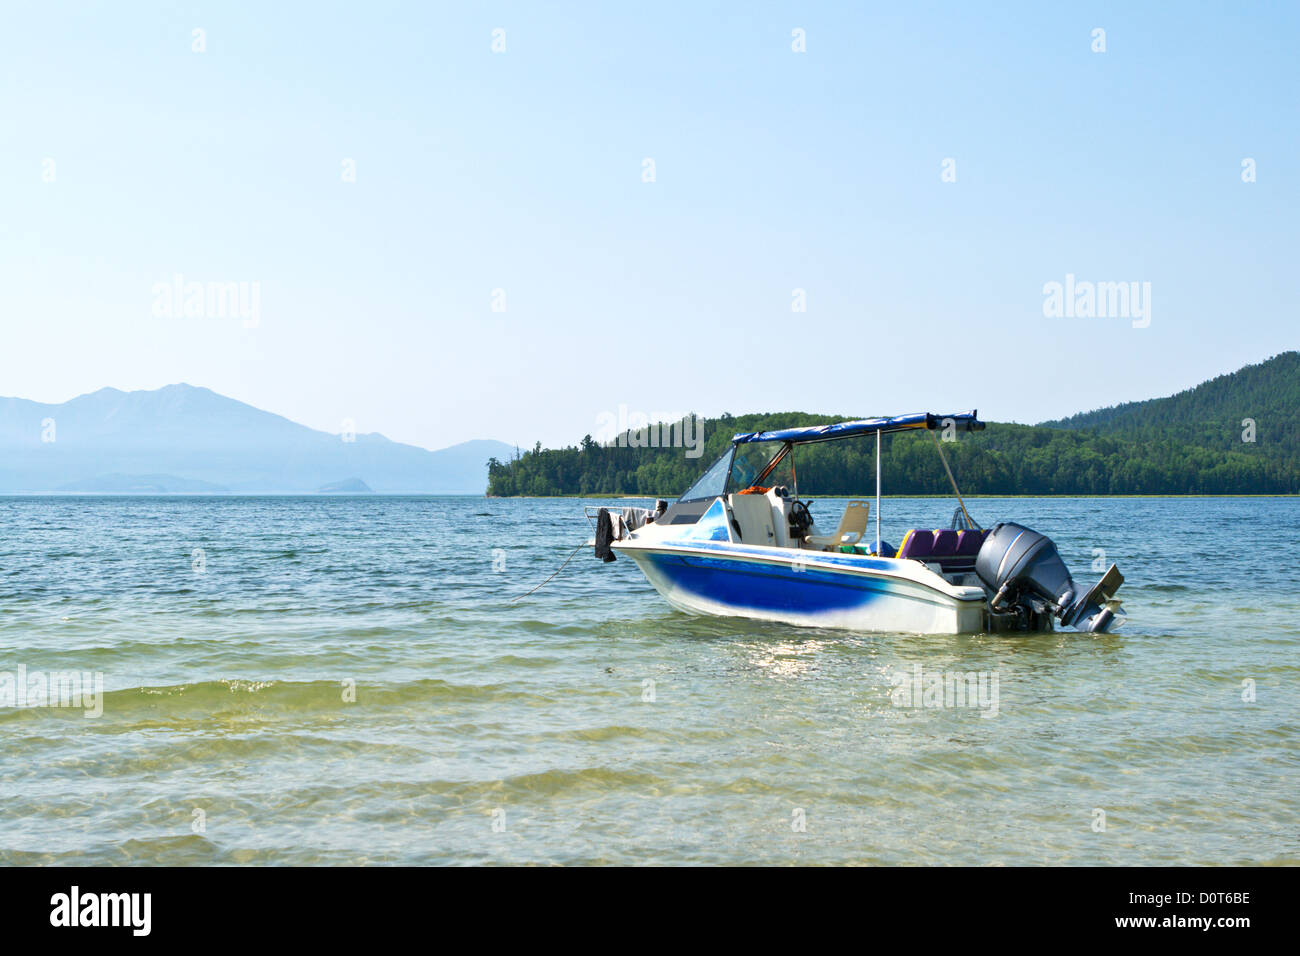 Powerboat - Stock Image